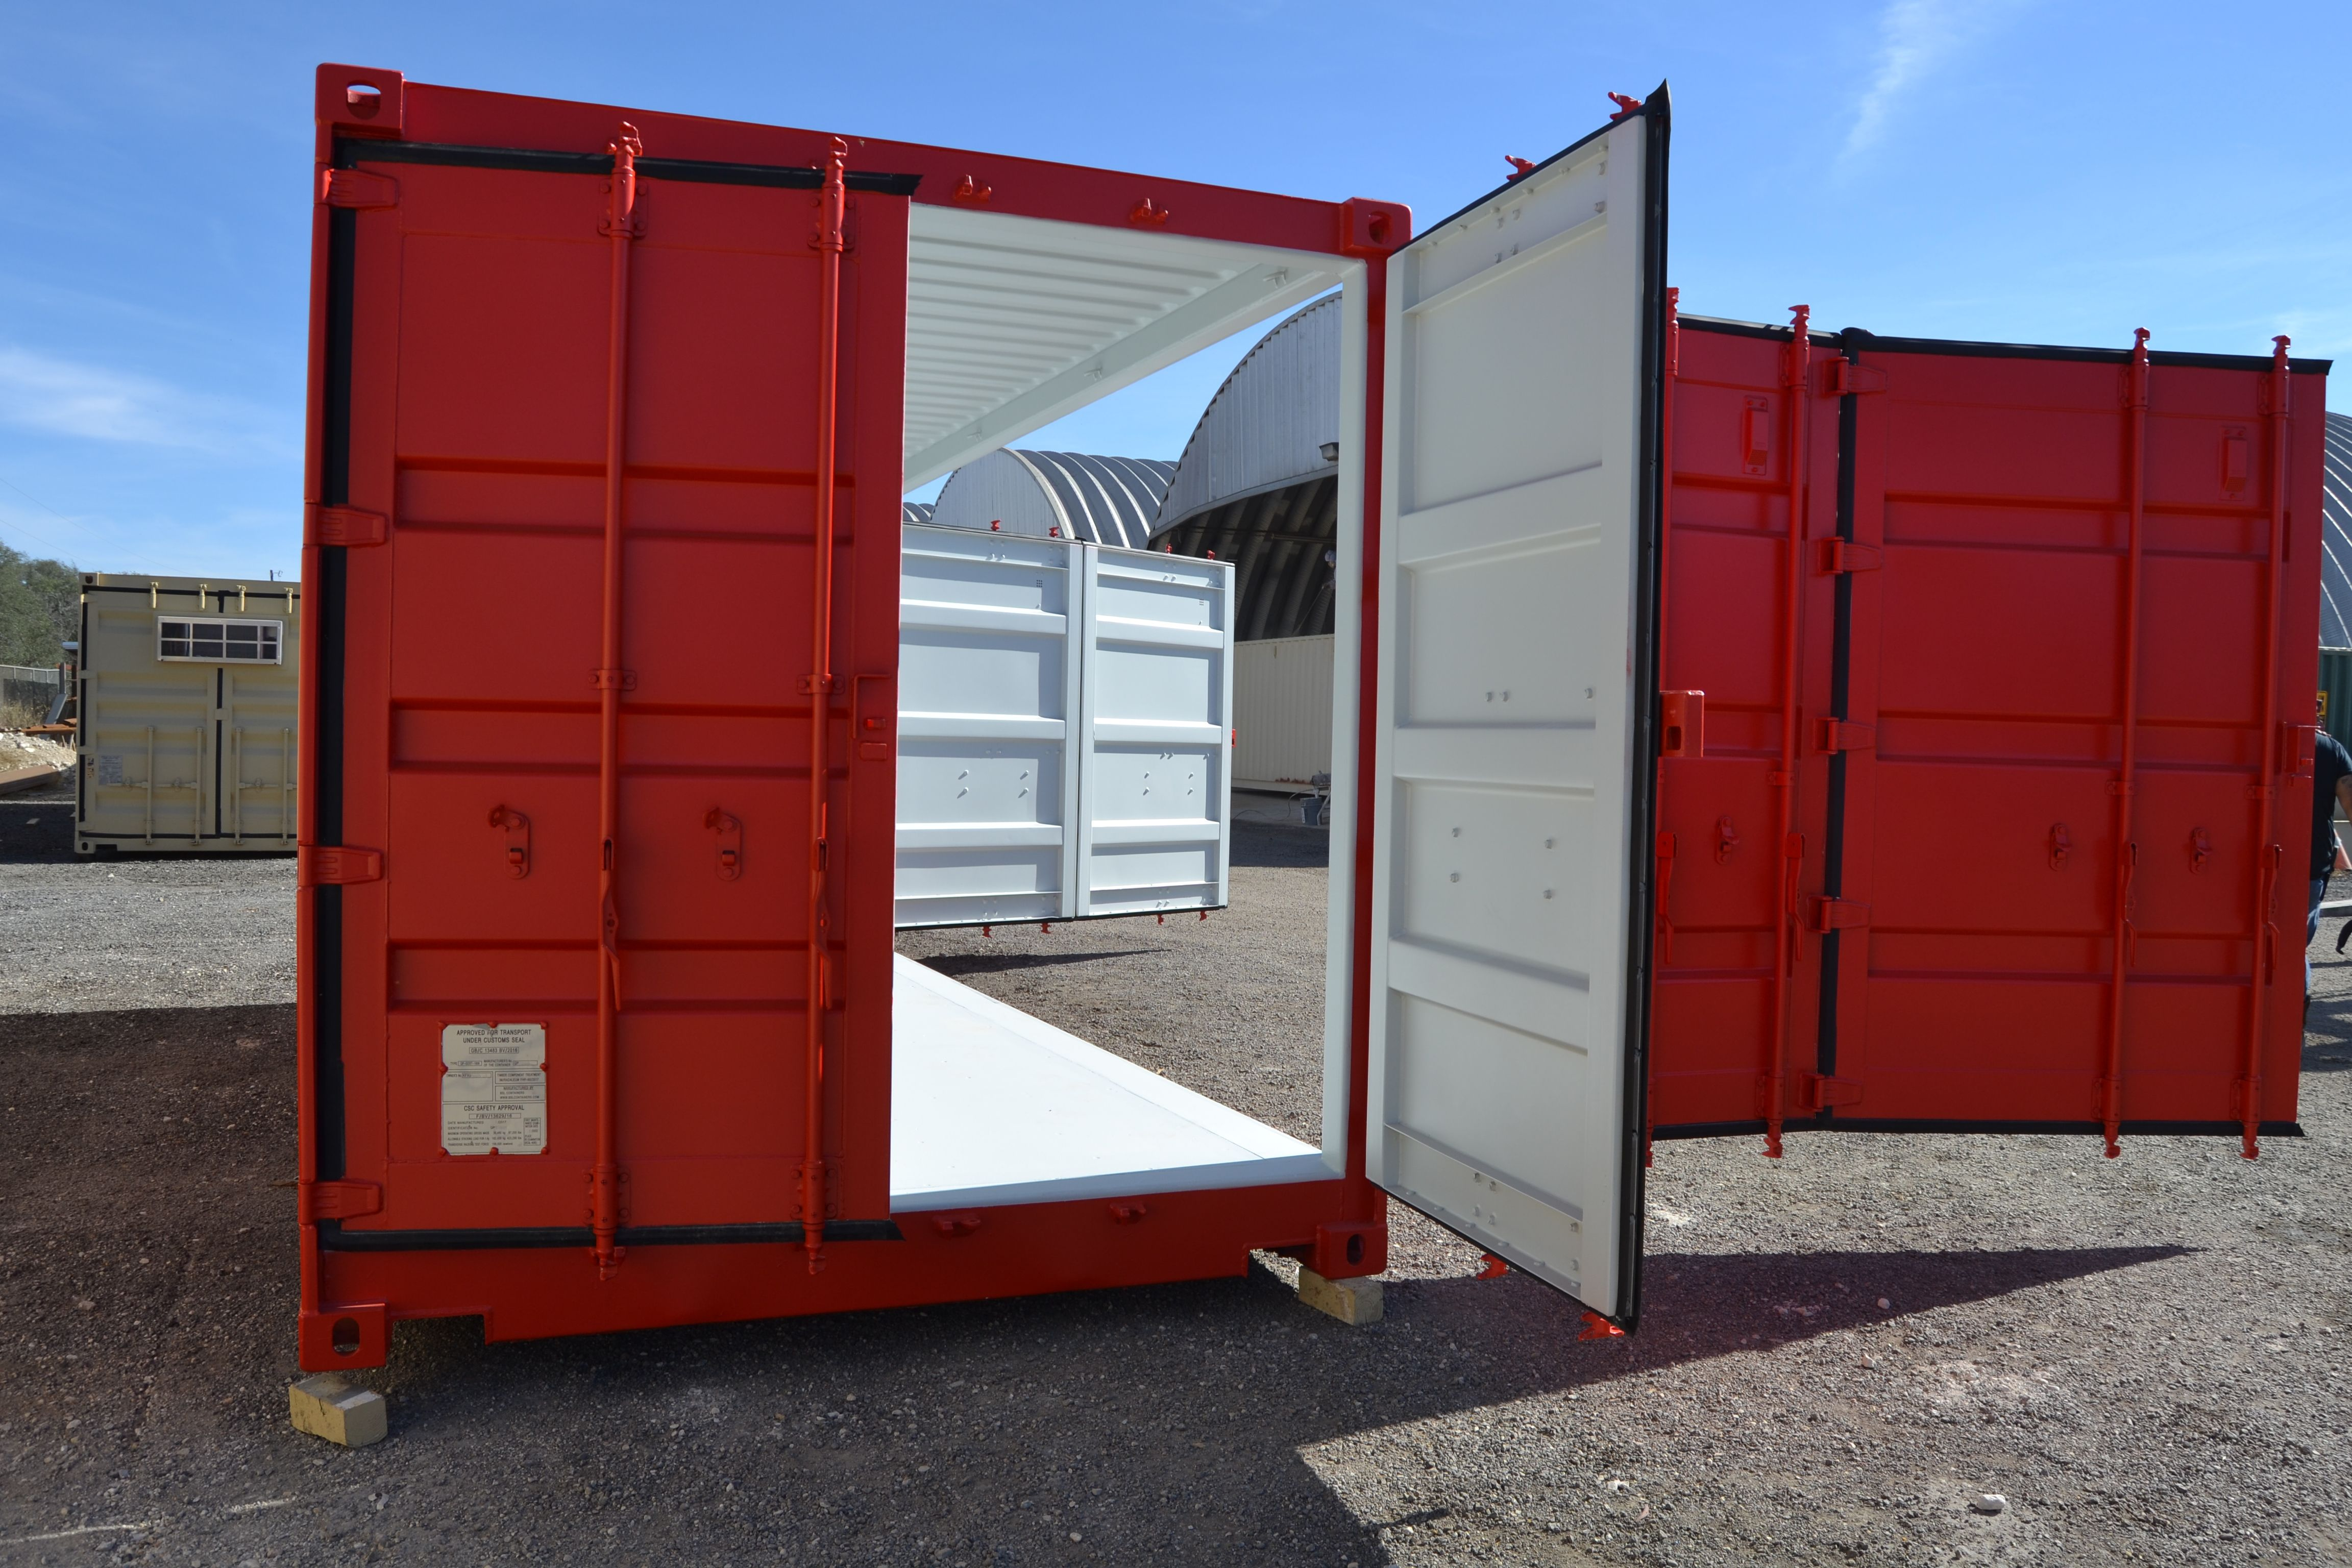 Cargo doors and side doors open on an open-side shipping